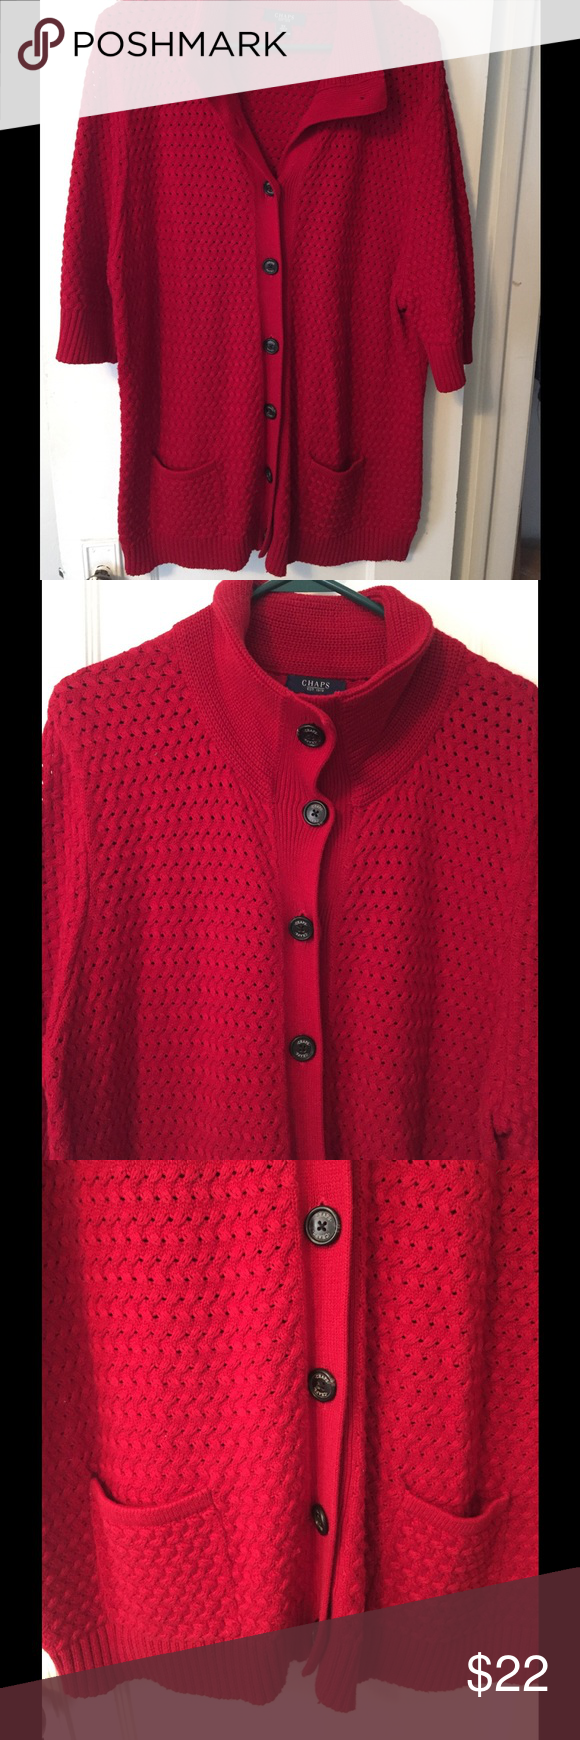 Chaps plus size 3x red short sleeve cardigan   Shorts, The office ...